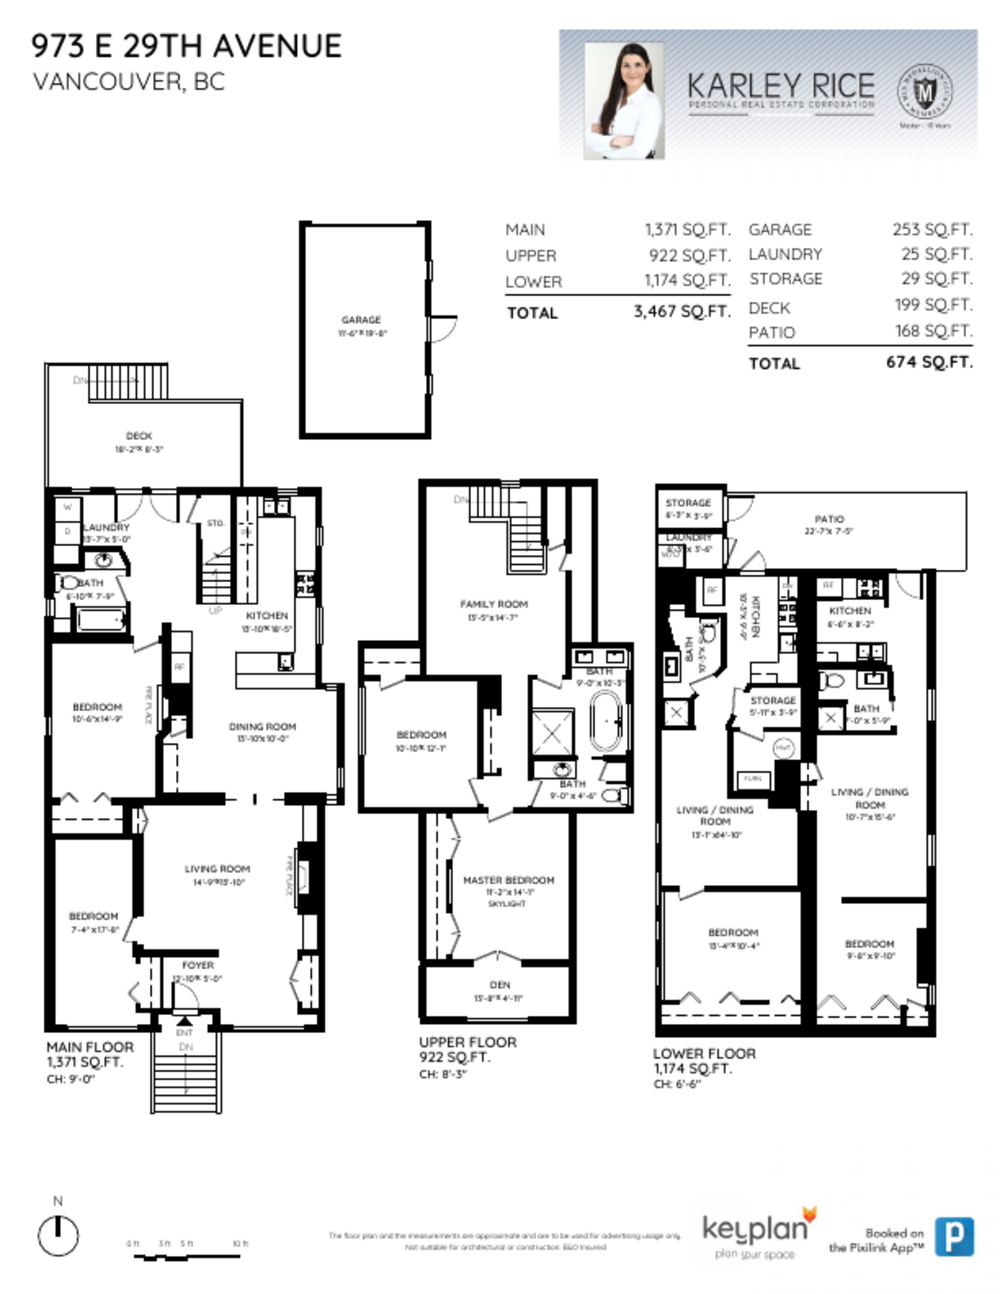 Floor Plan for a 6 Bedroom House in Vancouver